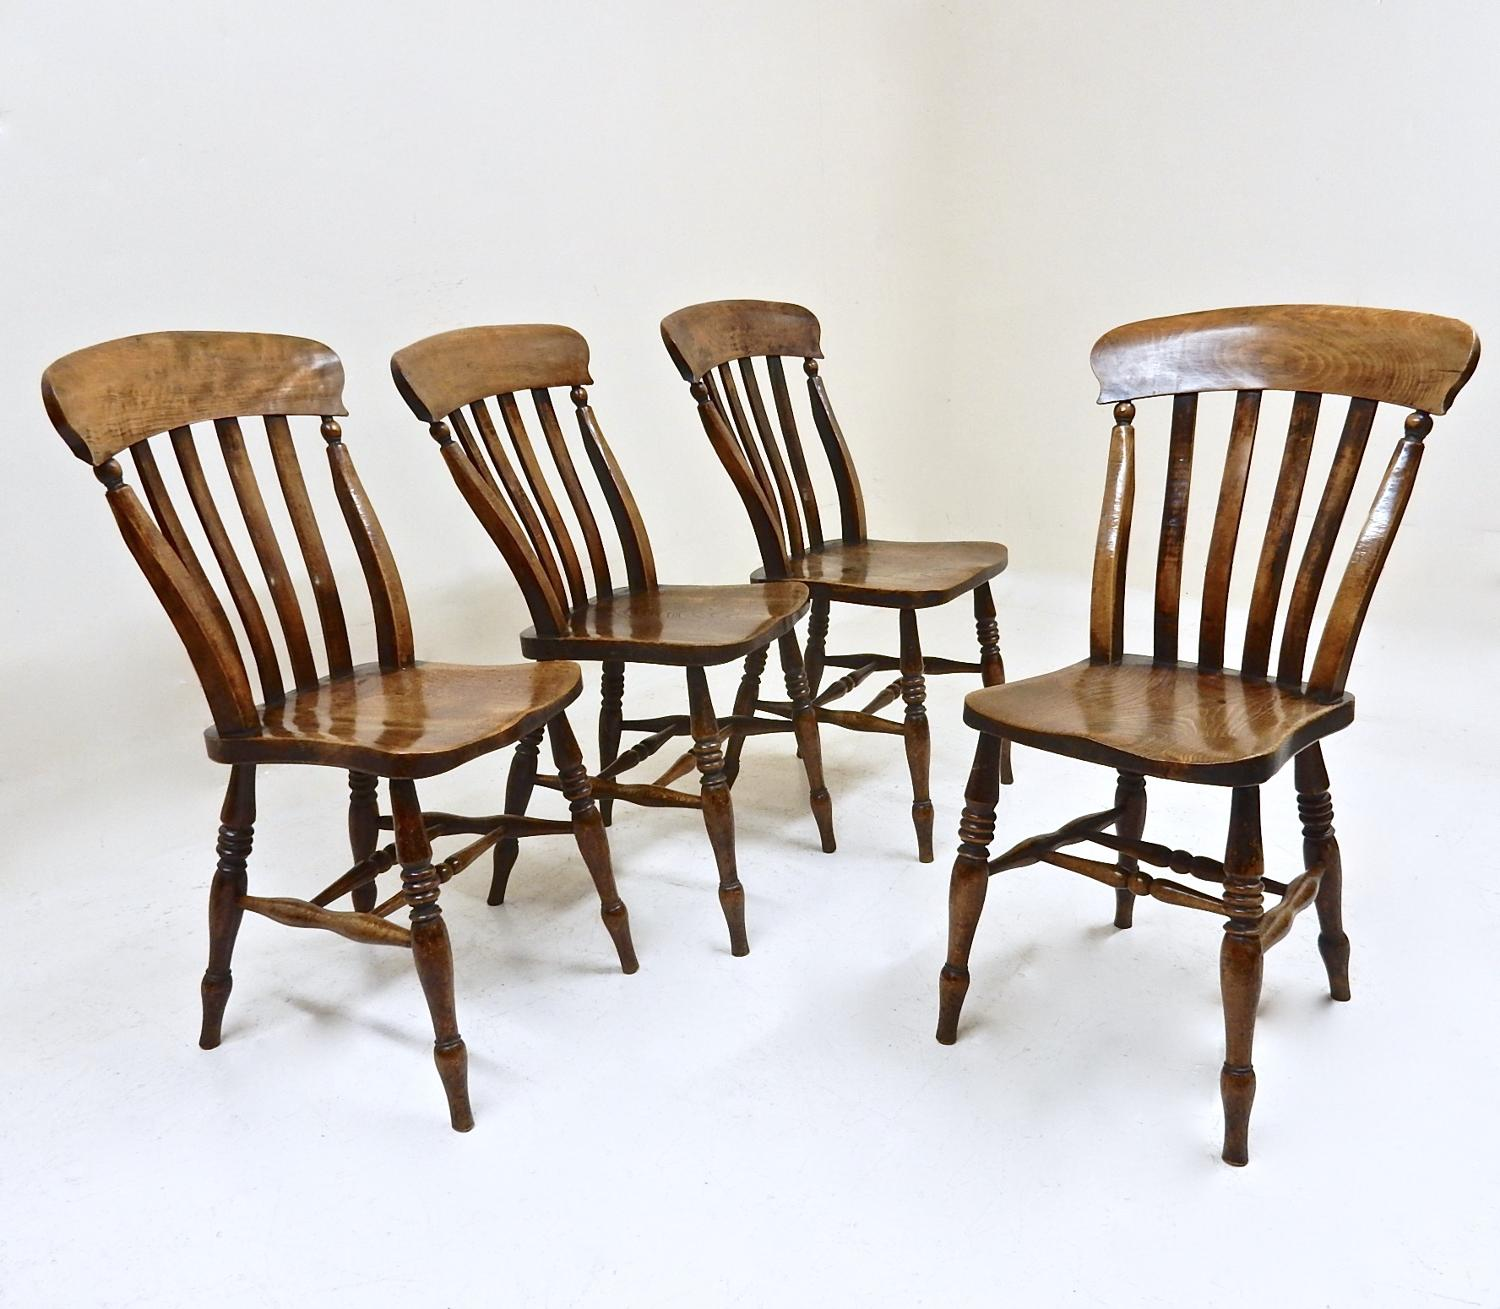 Lathback Windsor Kitchen Chairs